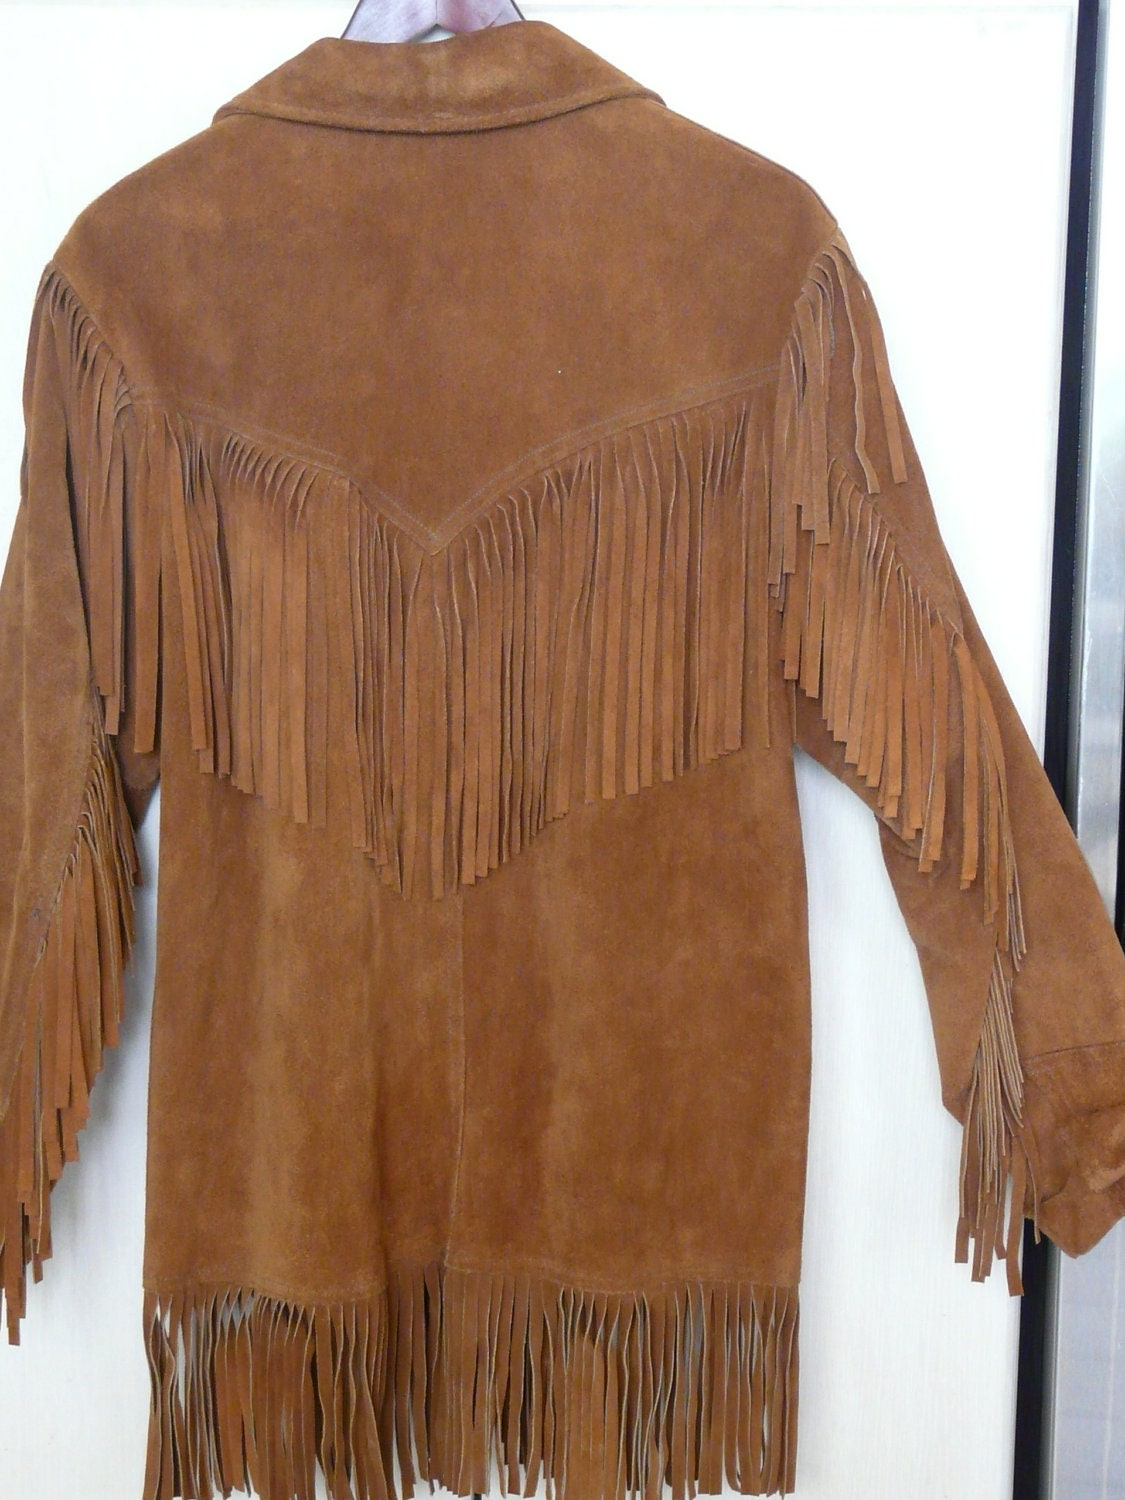 Men's Fringe Jackets. There are 24 products available. Men's Fringe Jackets - S M L XL 2XL 3XL Liberty Wear Men's Suede Fringe Western Jacket - Big & Tall - 4XL, 5XL $ Original Price $ Sale $ (20% Coupon) $ 32% Total Savings.